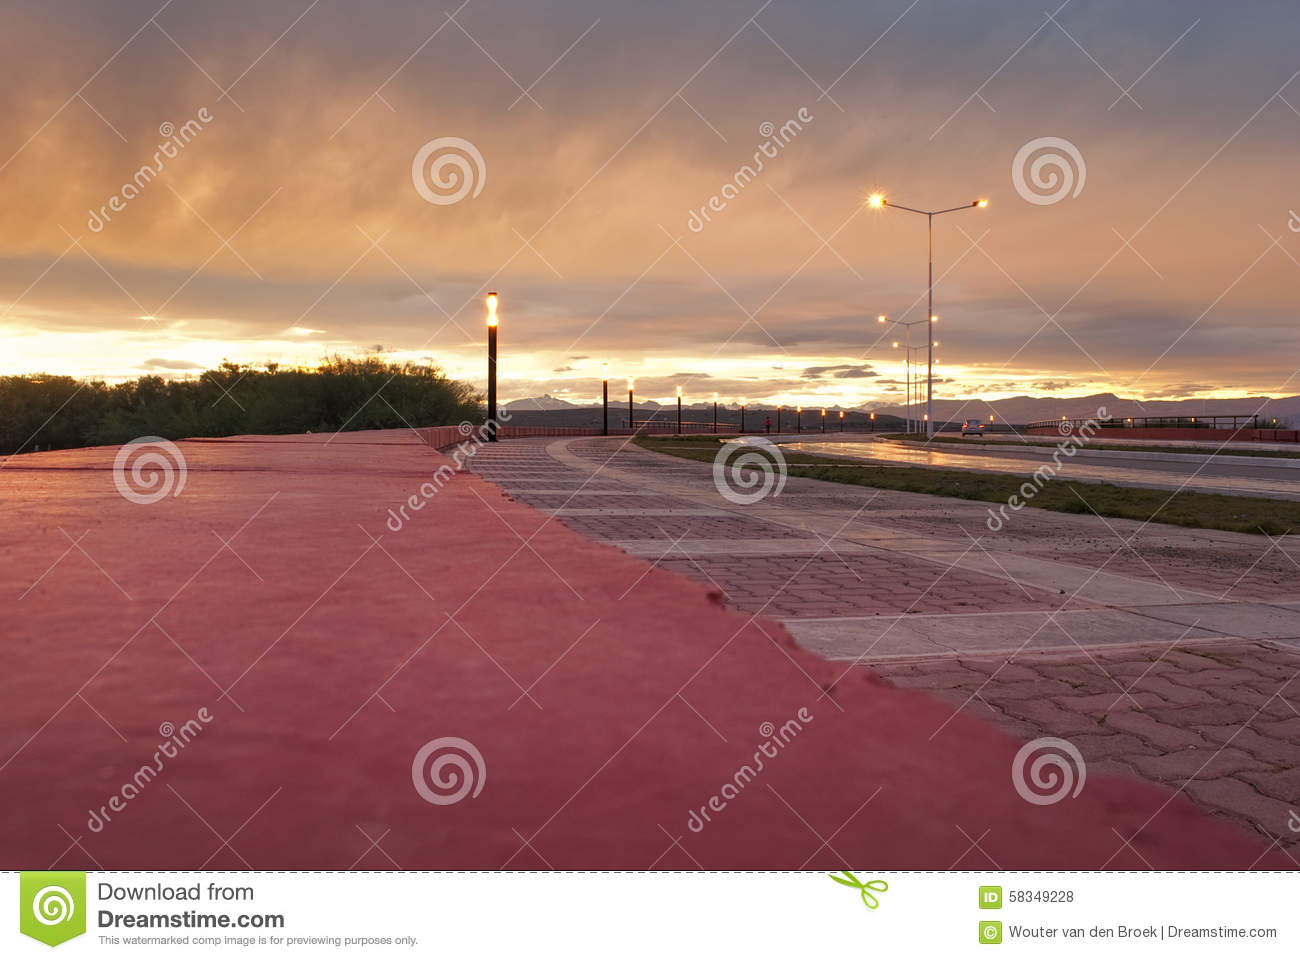 Quite boulevard with amazing colorful patagonian sunset.